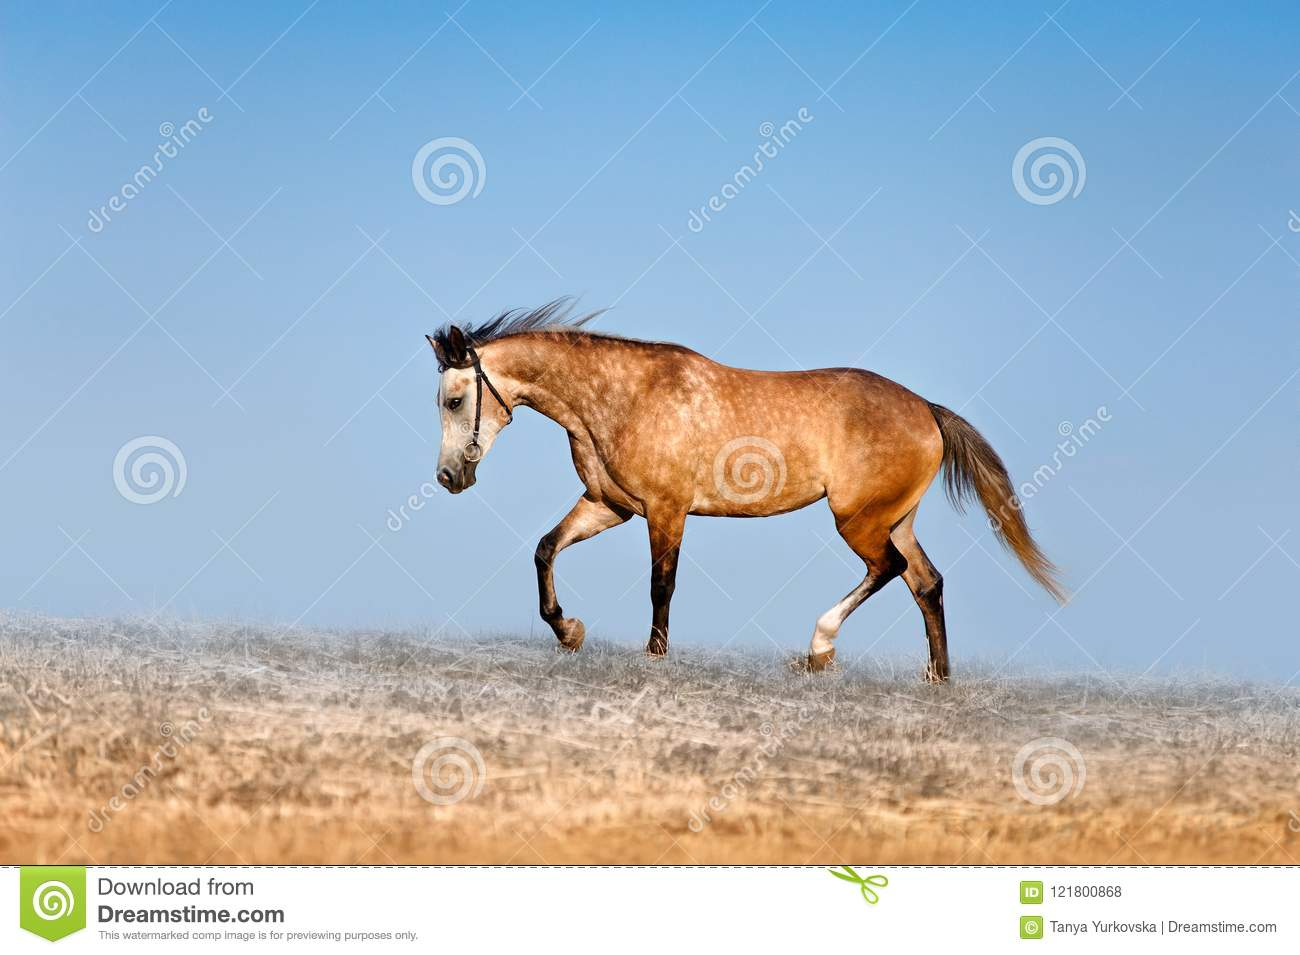 Beautiful red-dappled mare galloping across the field on a background of blue sky.